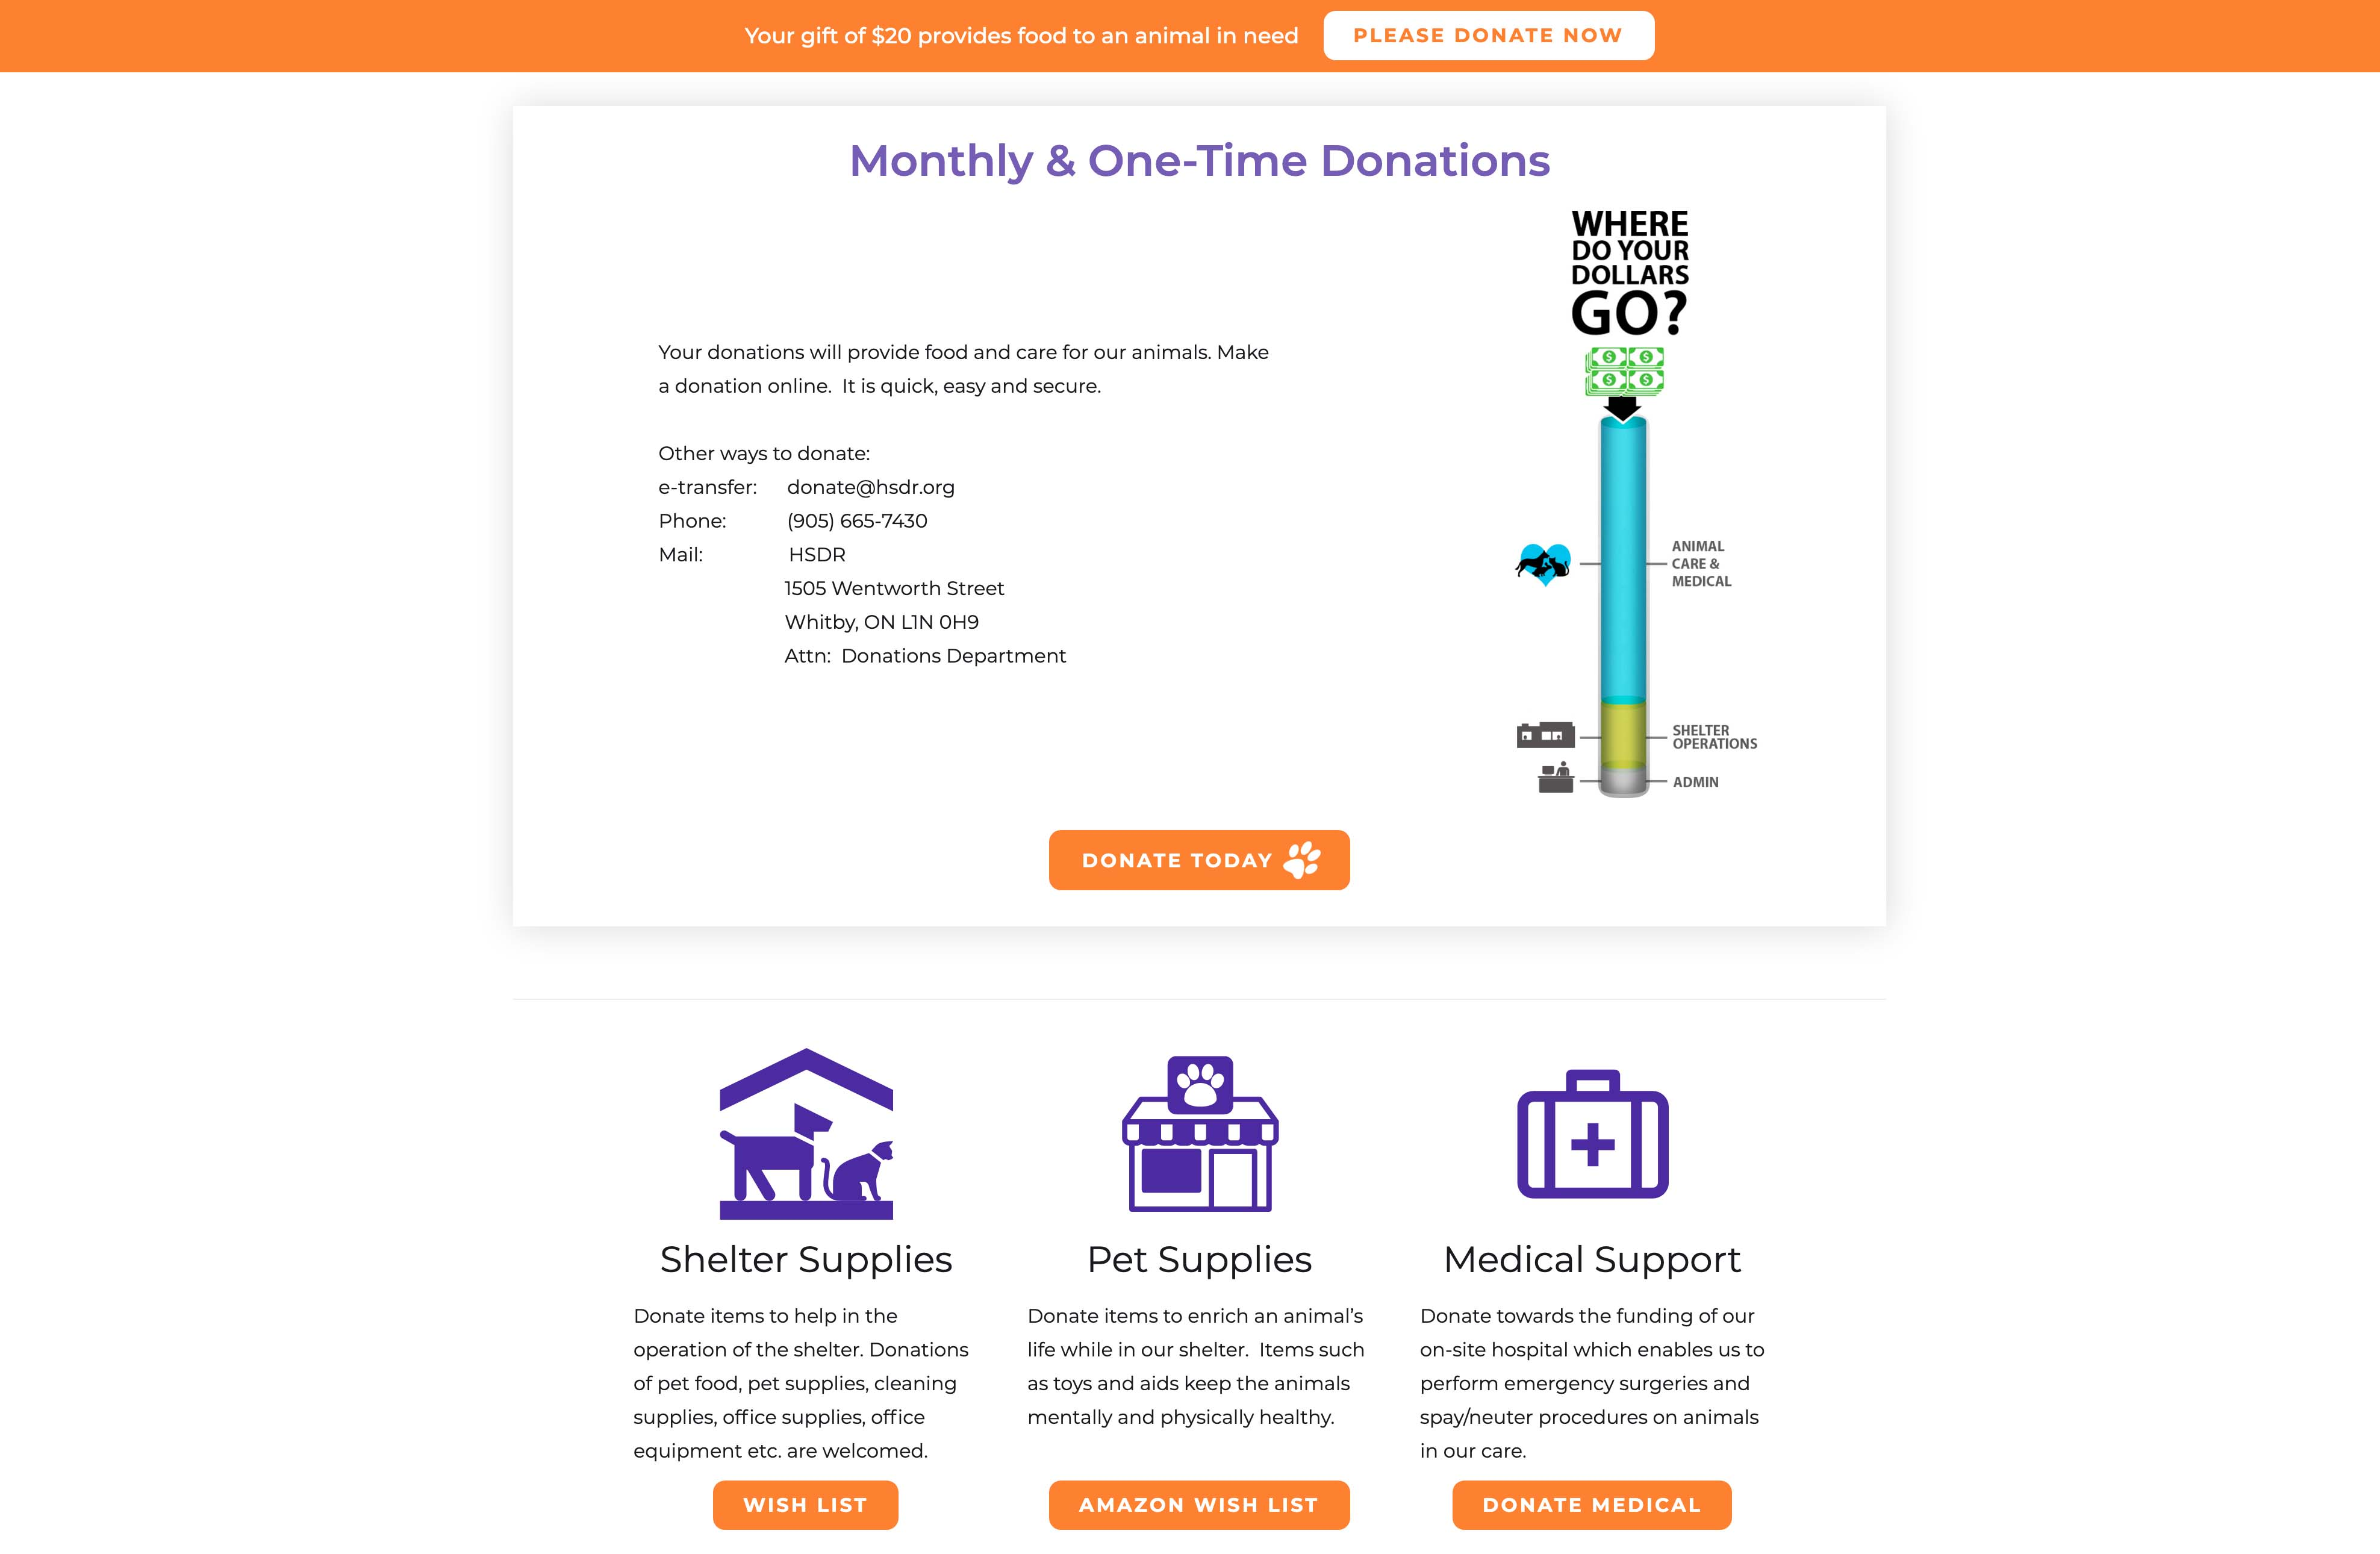 Sample website page from HSDR website showing donation allocations.